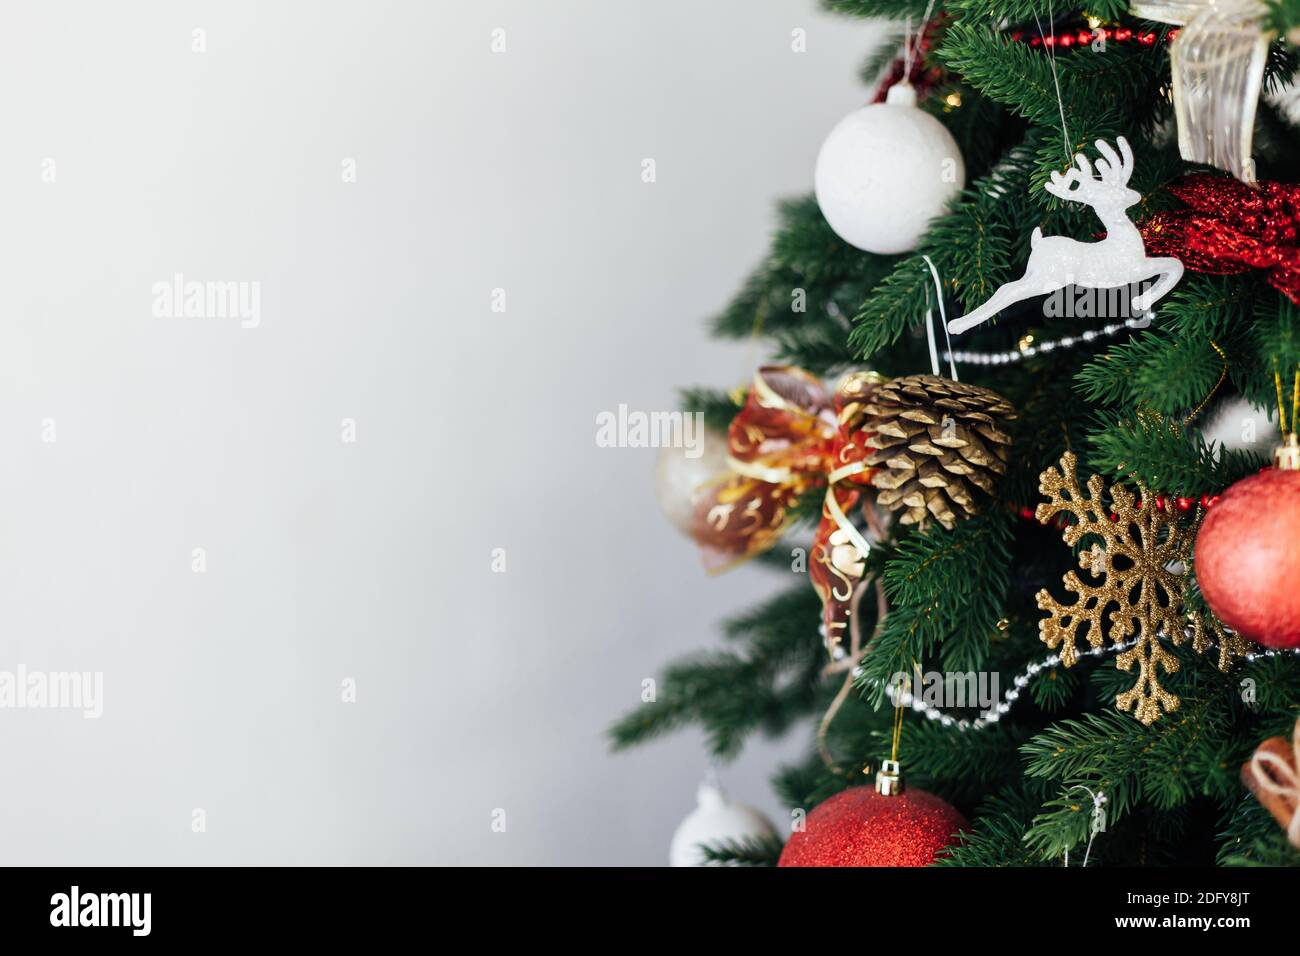 Twigs Christmas Tree Decor New Year S Background Place For Inscription Stock Photo Alamy